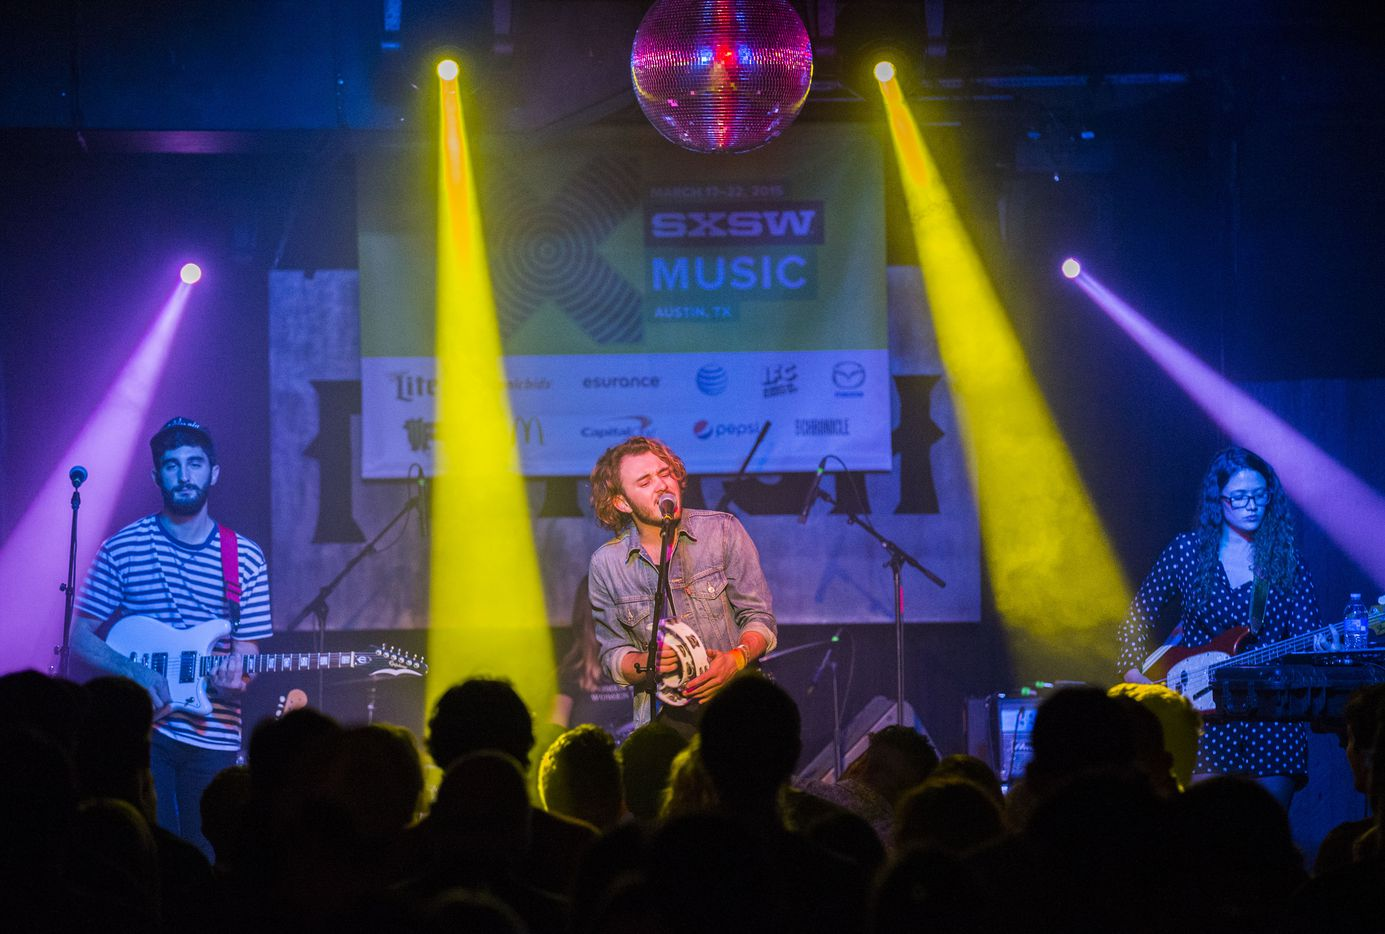 The band San Cisco of Australia performs at the Parish during the 2015 SXSW music festival on Thursday, March 19, 2015 in Austin.